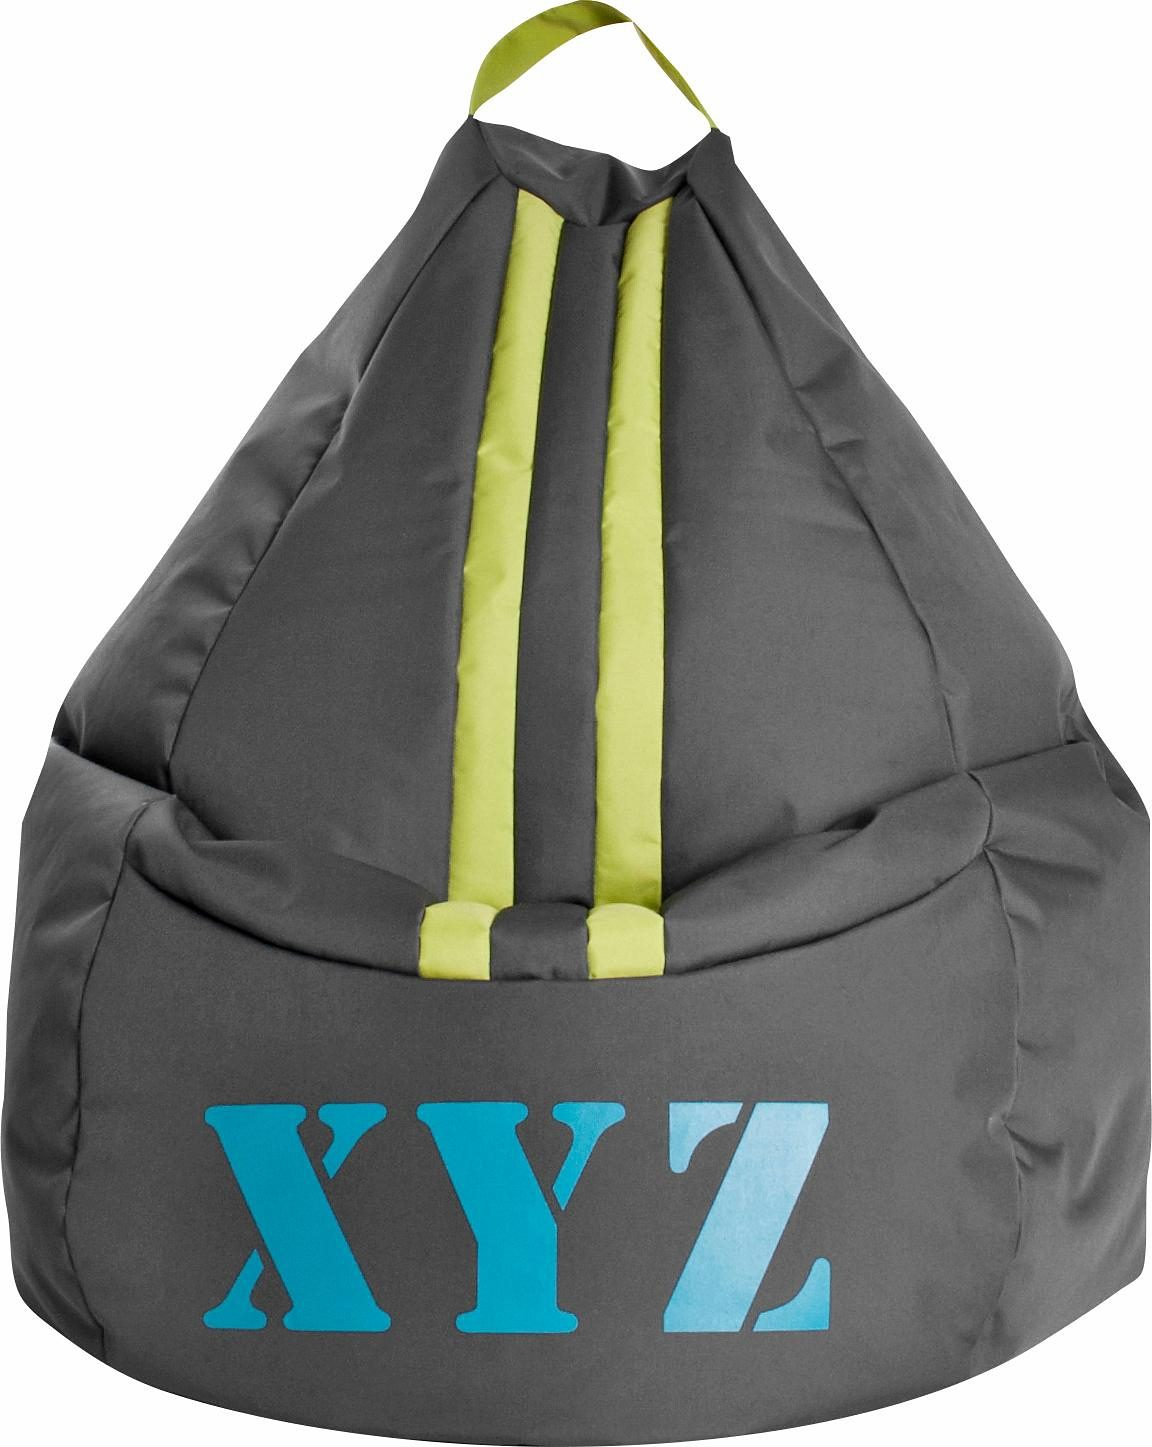 Sitting Point Sitzsack »XYZ XL«